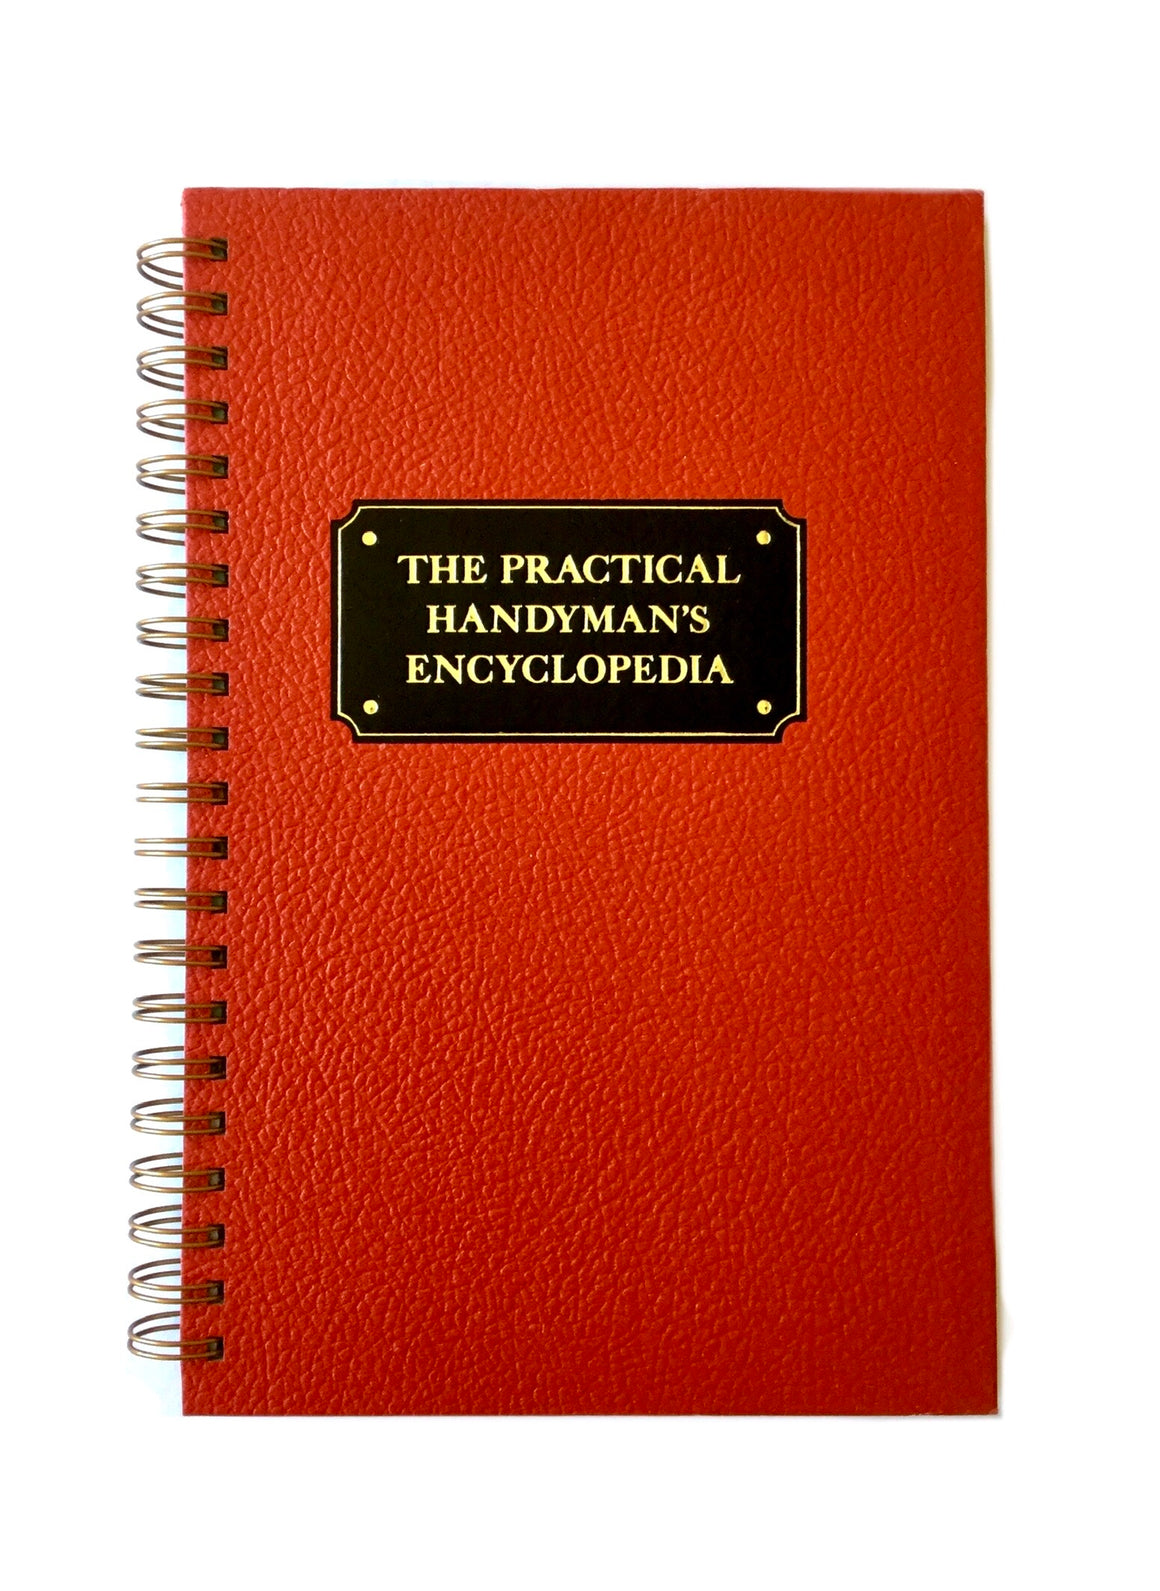 The Practical Handyman Encyclopedia (#2, #4, #5, #10)-Red Barn Collections